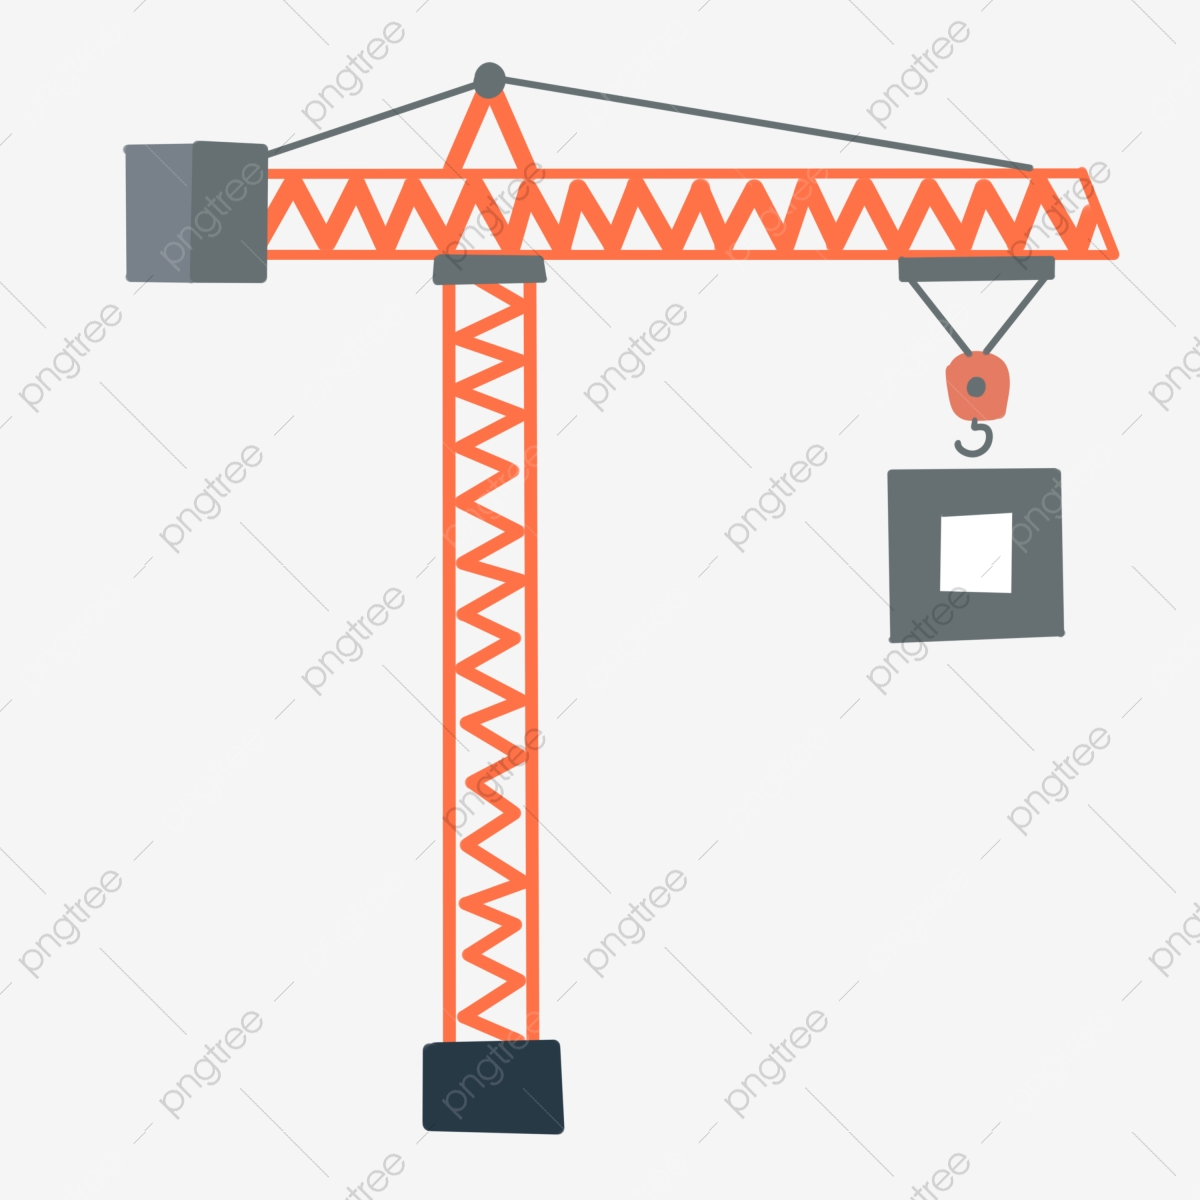 Clip Art Crane Icons - Construction Icons Png , Free Transparent Clipart -  ClipartKey